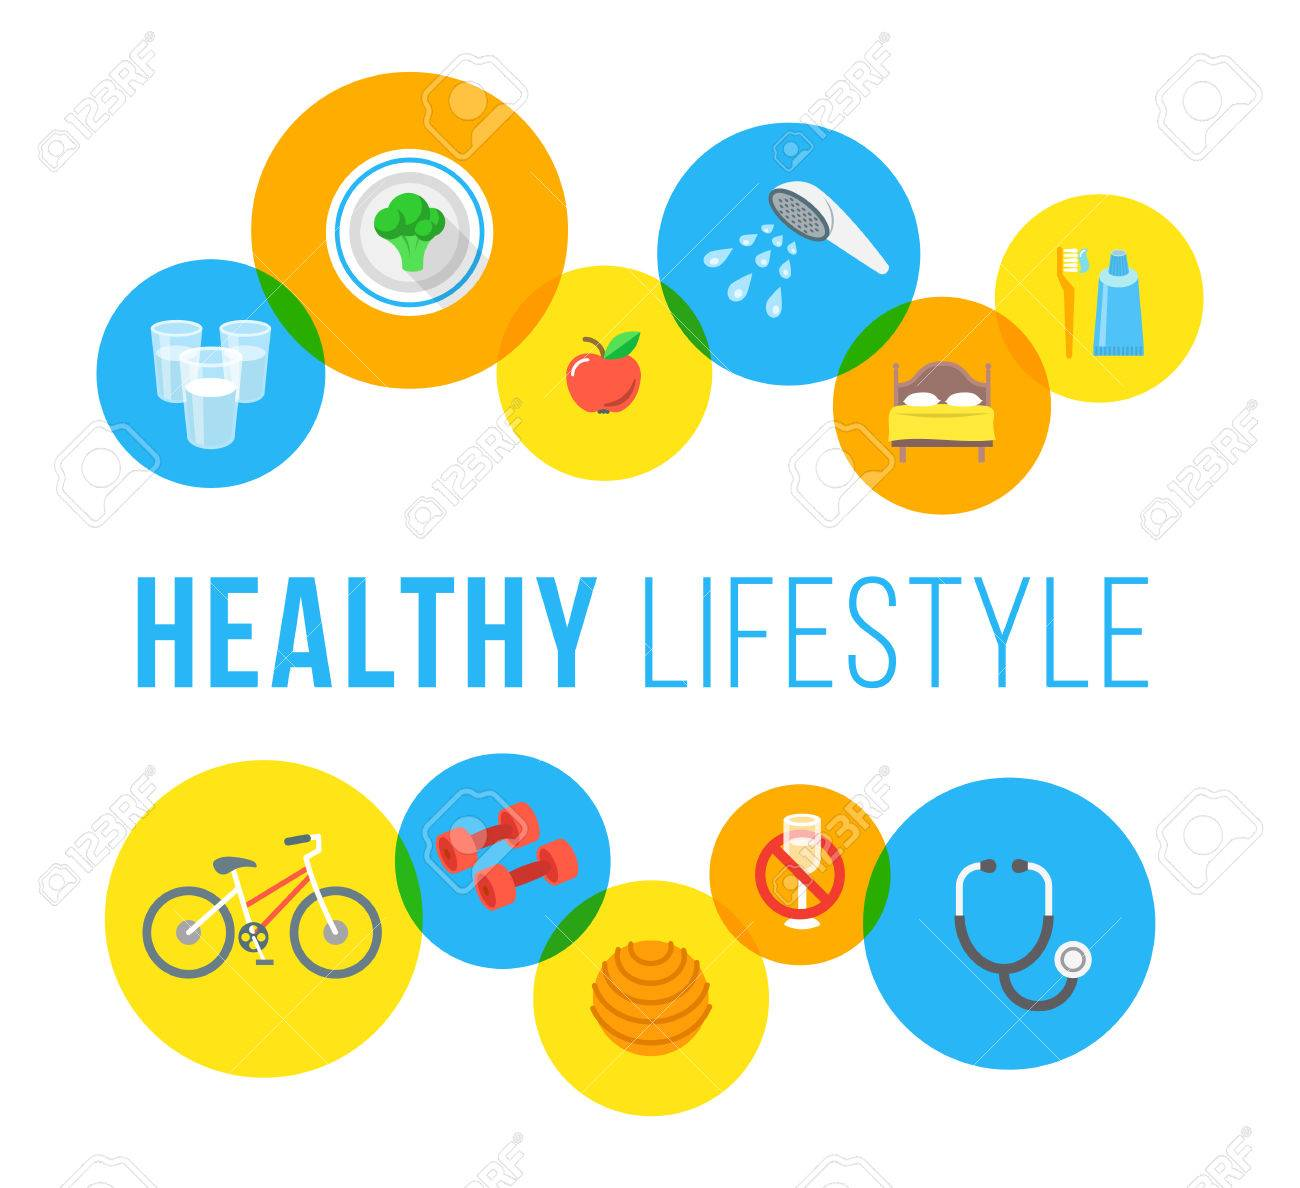 Healthy living flat vector banner. Healthcare and wellness lifestyle background. Regular exercises, daily physical activity, good food, sleep, hygiene, medical exam icons. Fitness infographic elements - 59482585